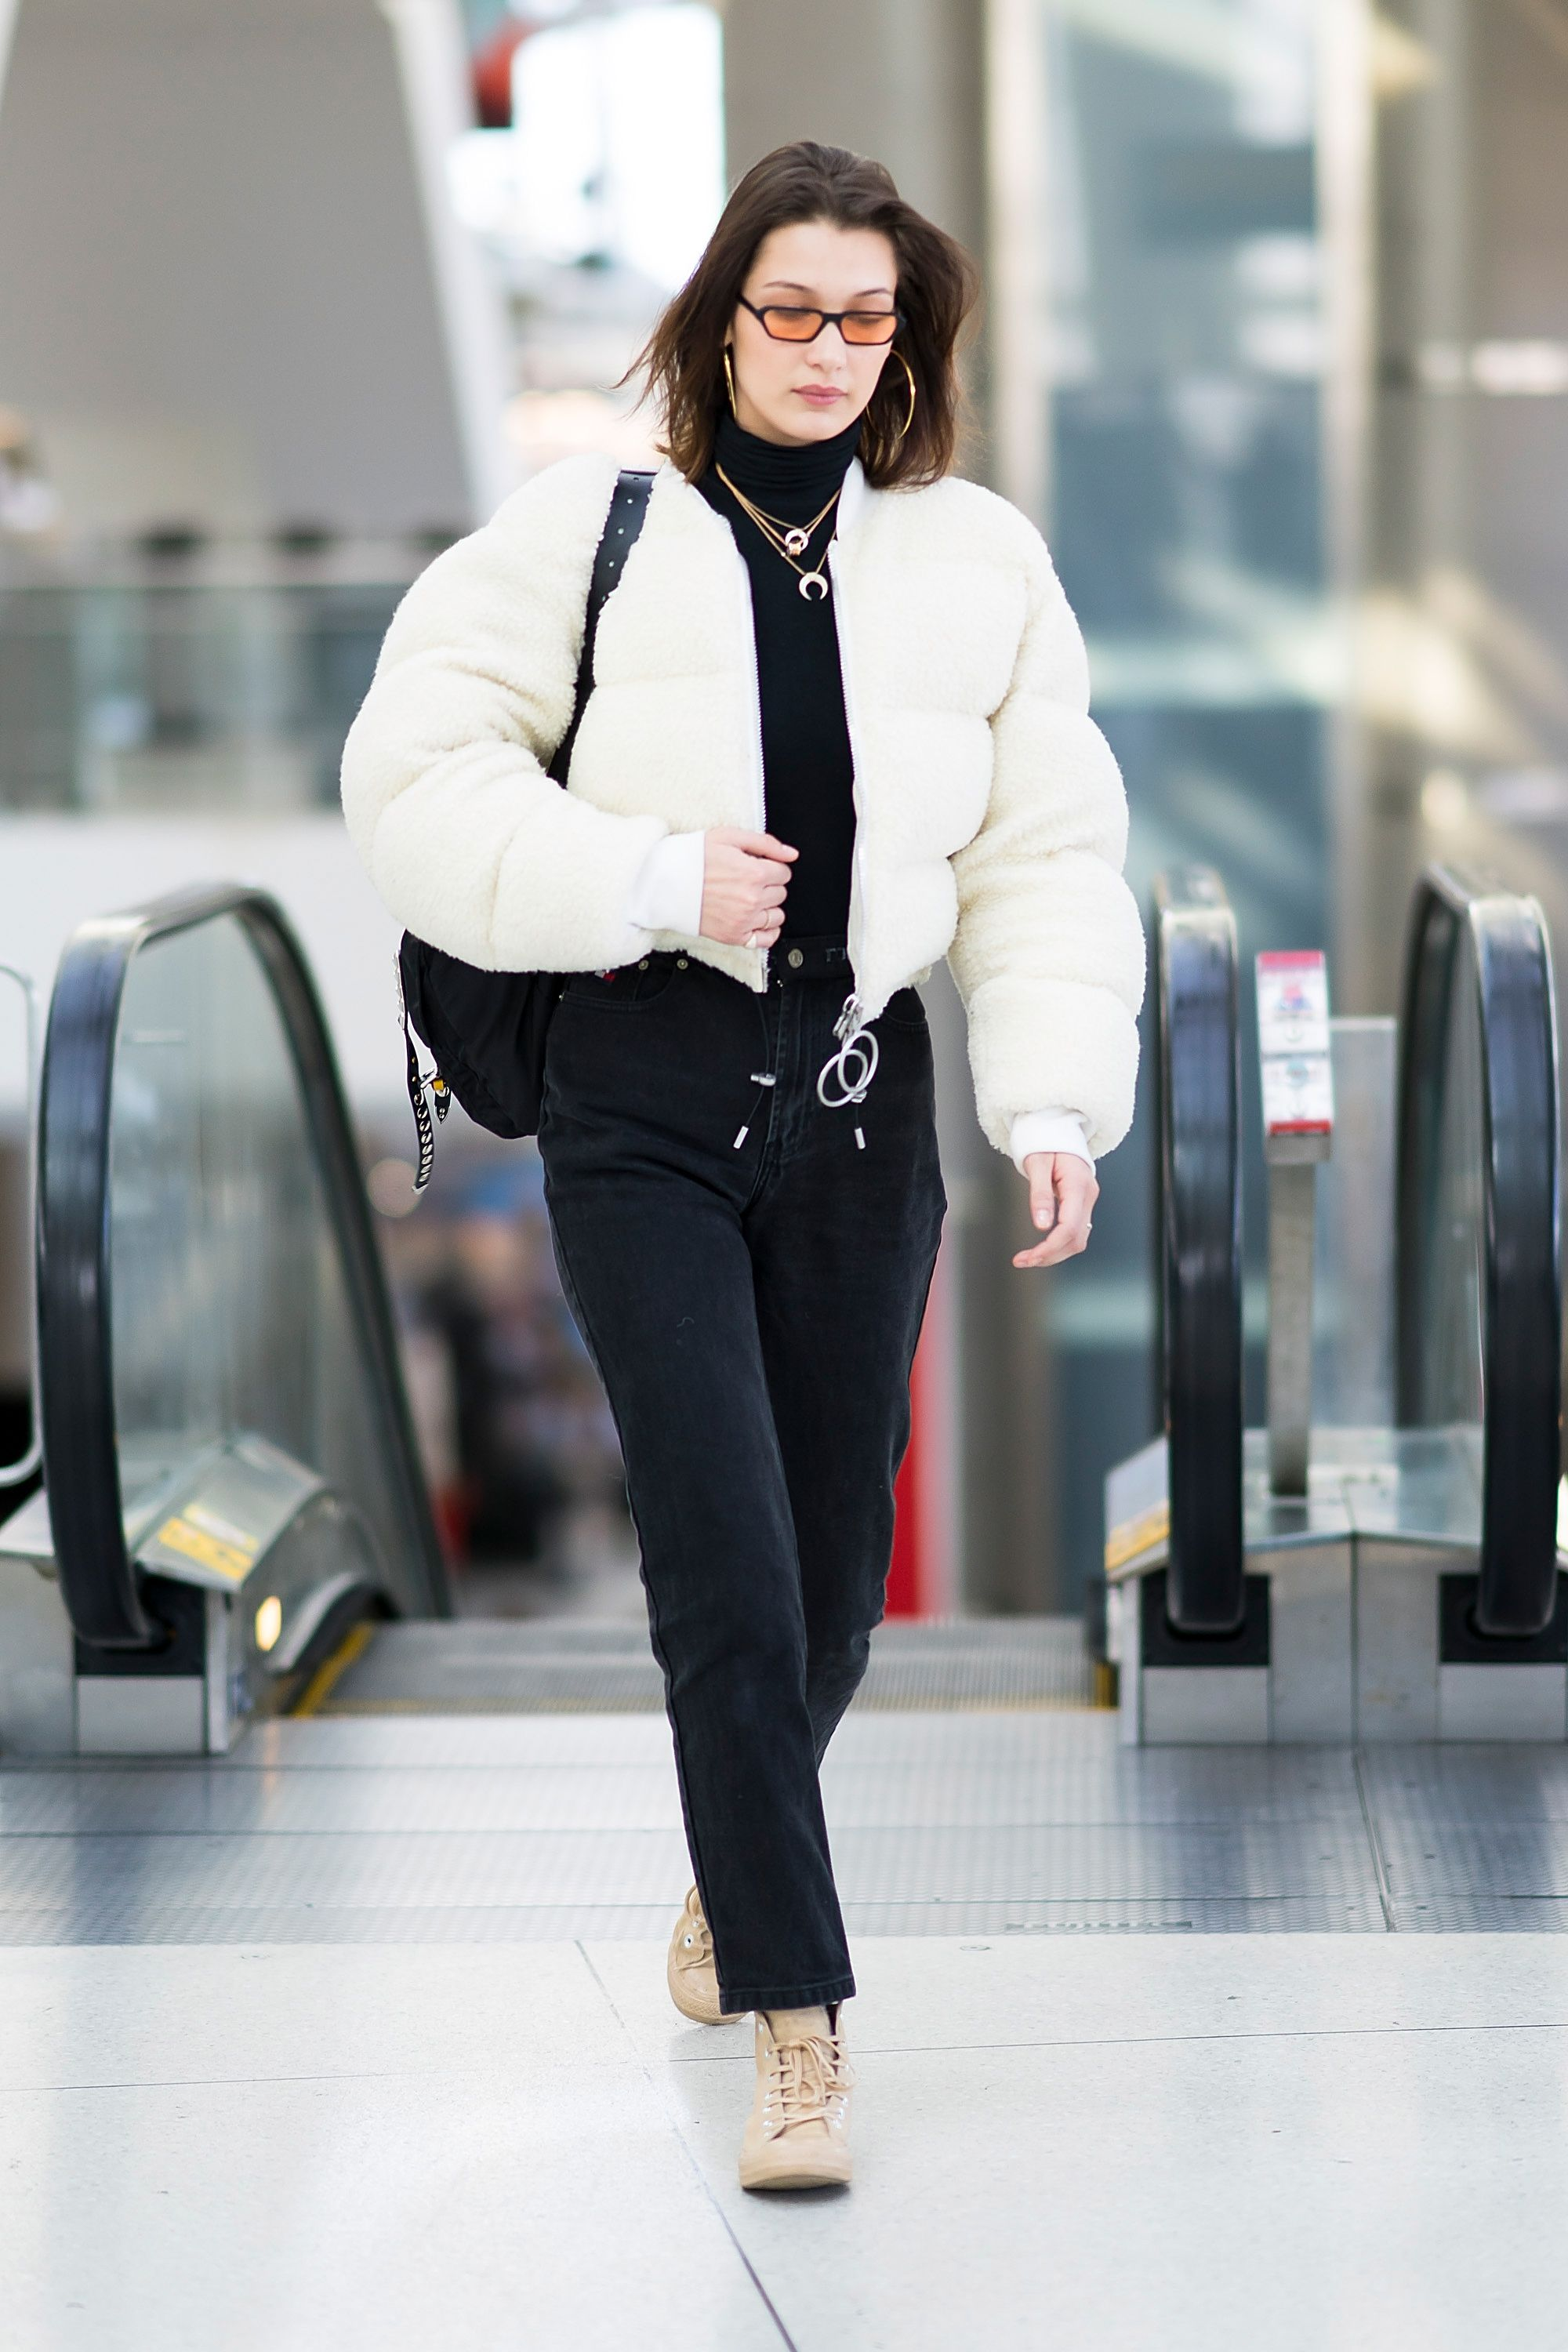 d228524aa0d Celebrities Airport Style - Celebs Airport Fashion Photos